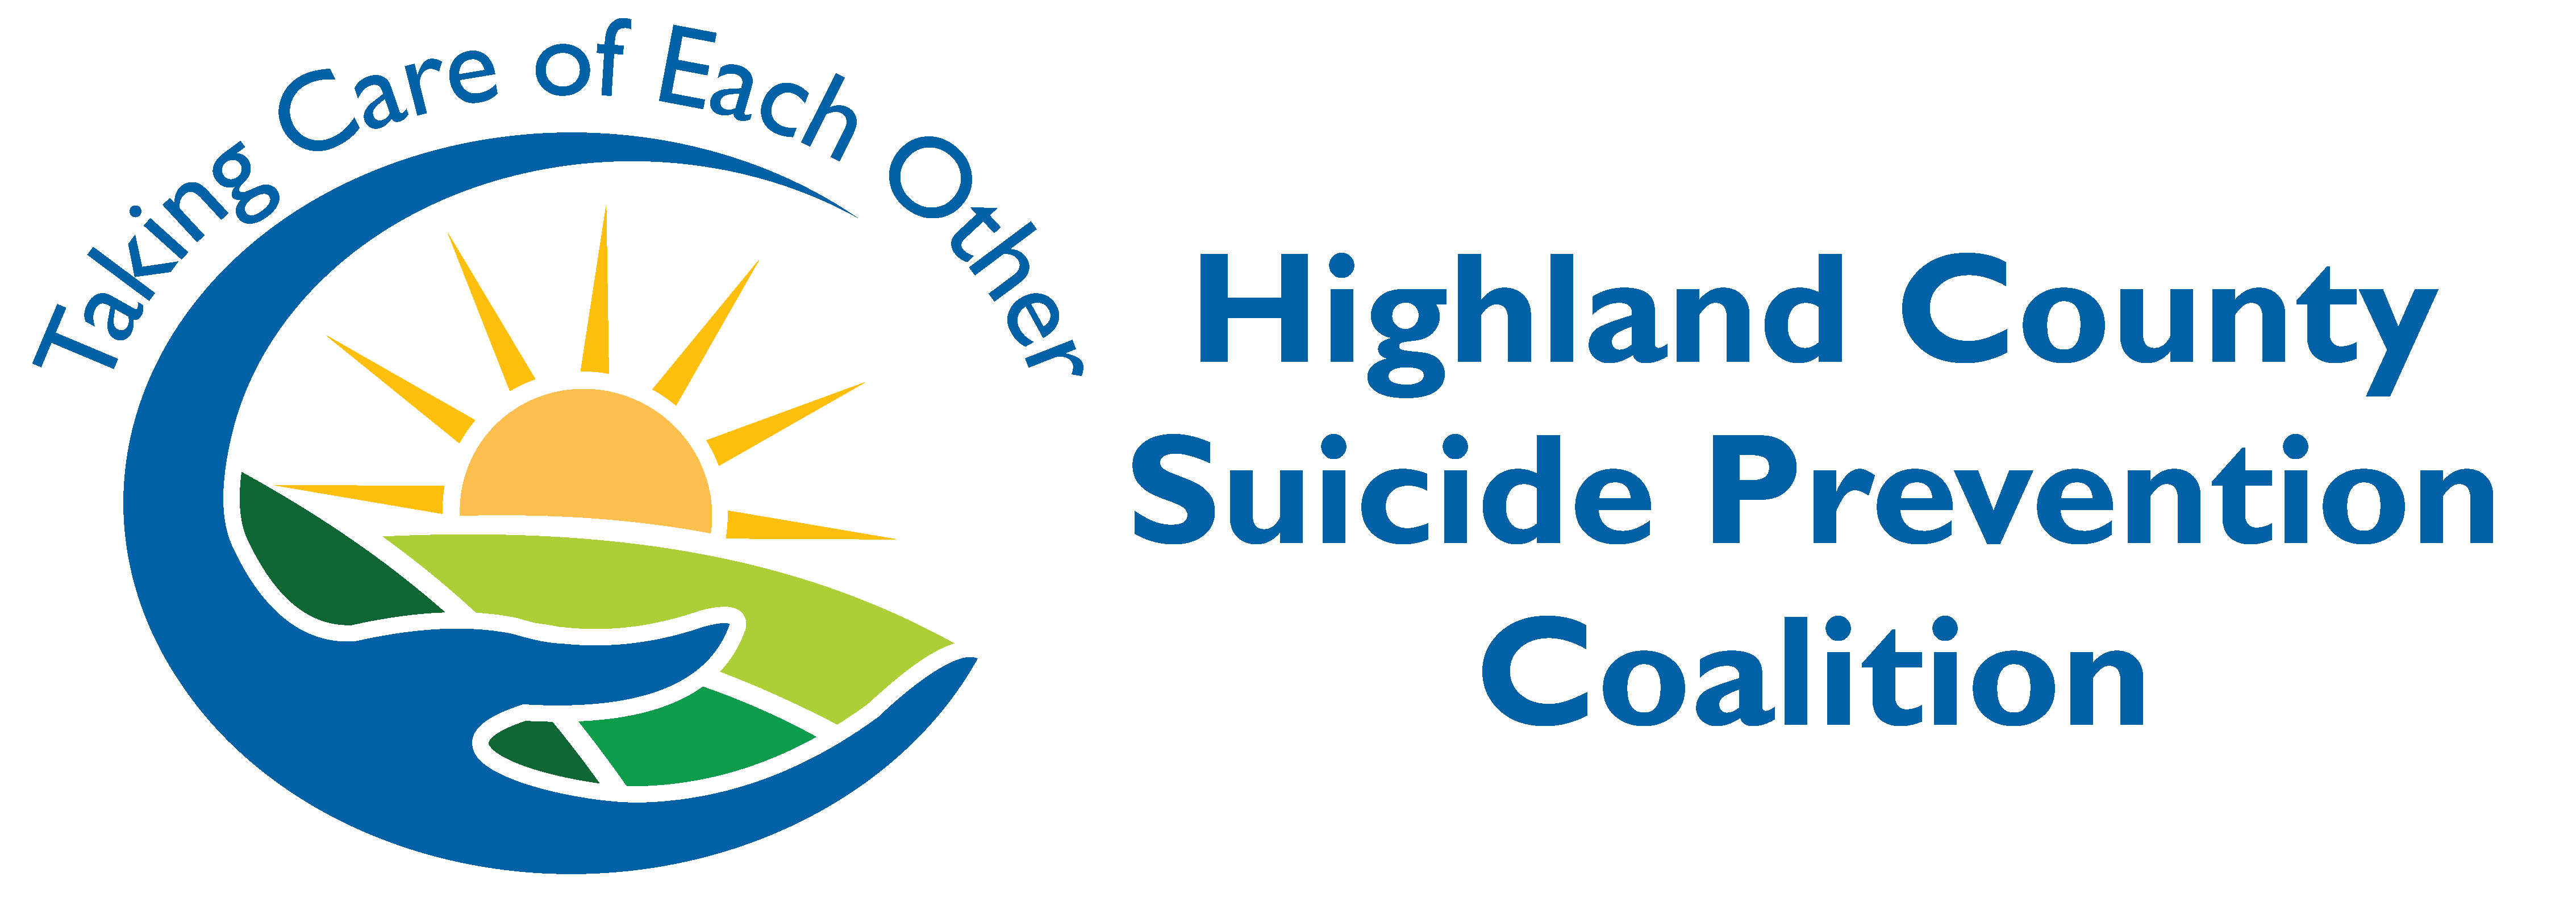 Highland County Suicide Prevention Coalition